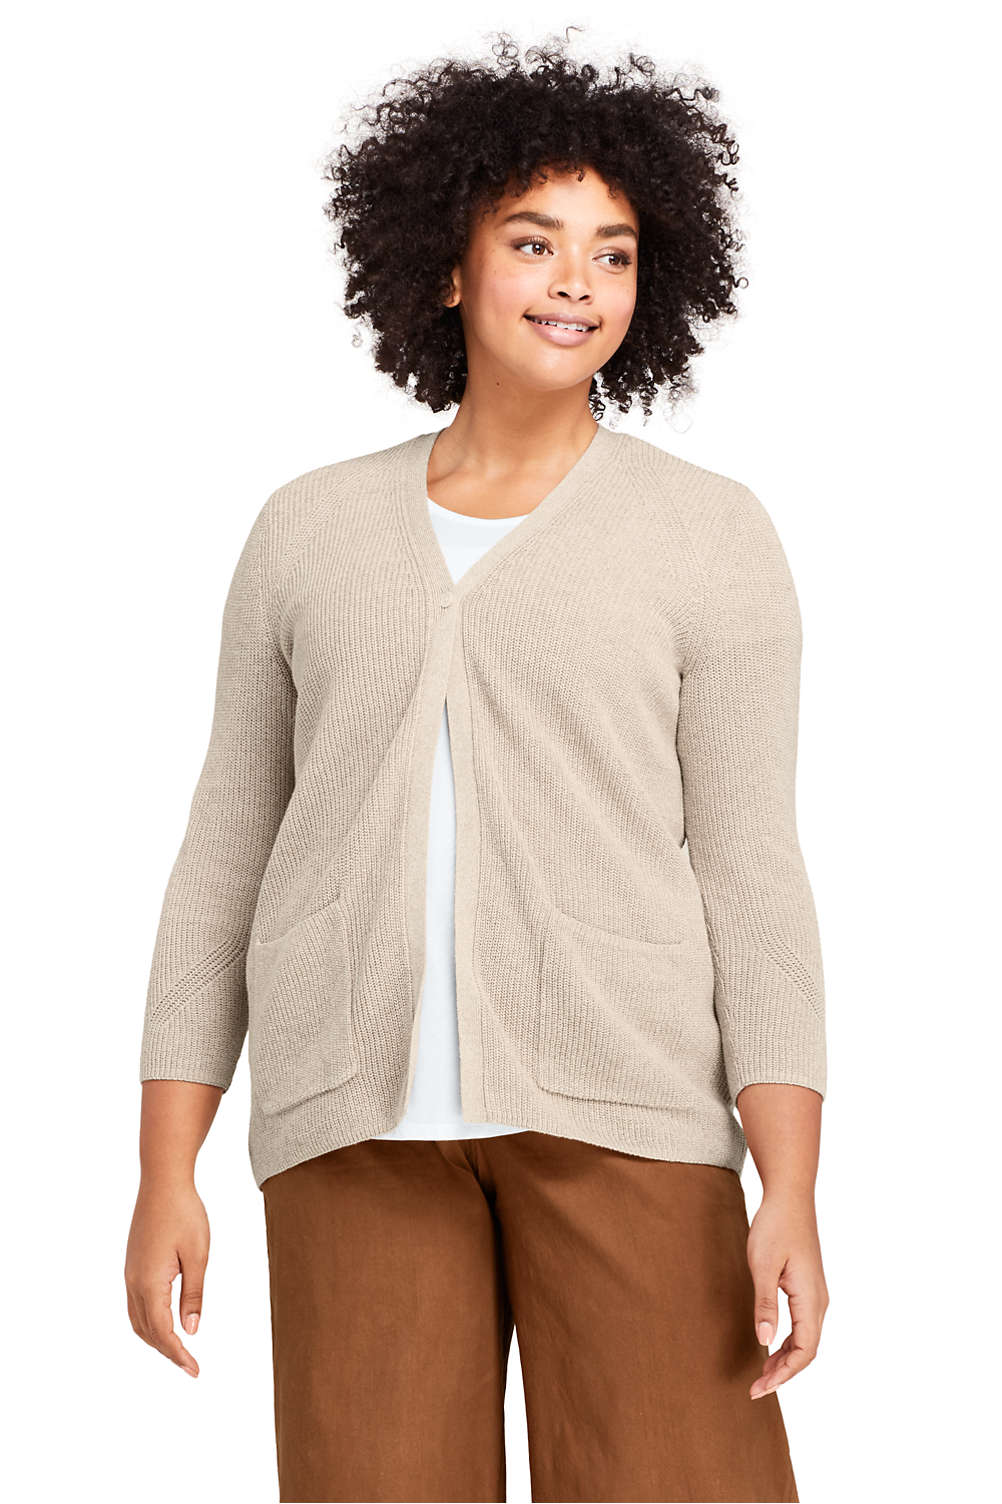 a6a14b14cbf Women s Plus Size Linen Cotton 3 4 Sleeve Shaker V-neck Cardigan Sweater  from Lands  End